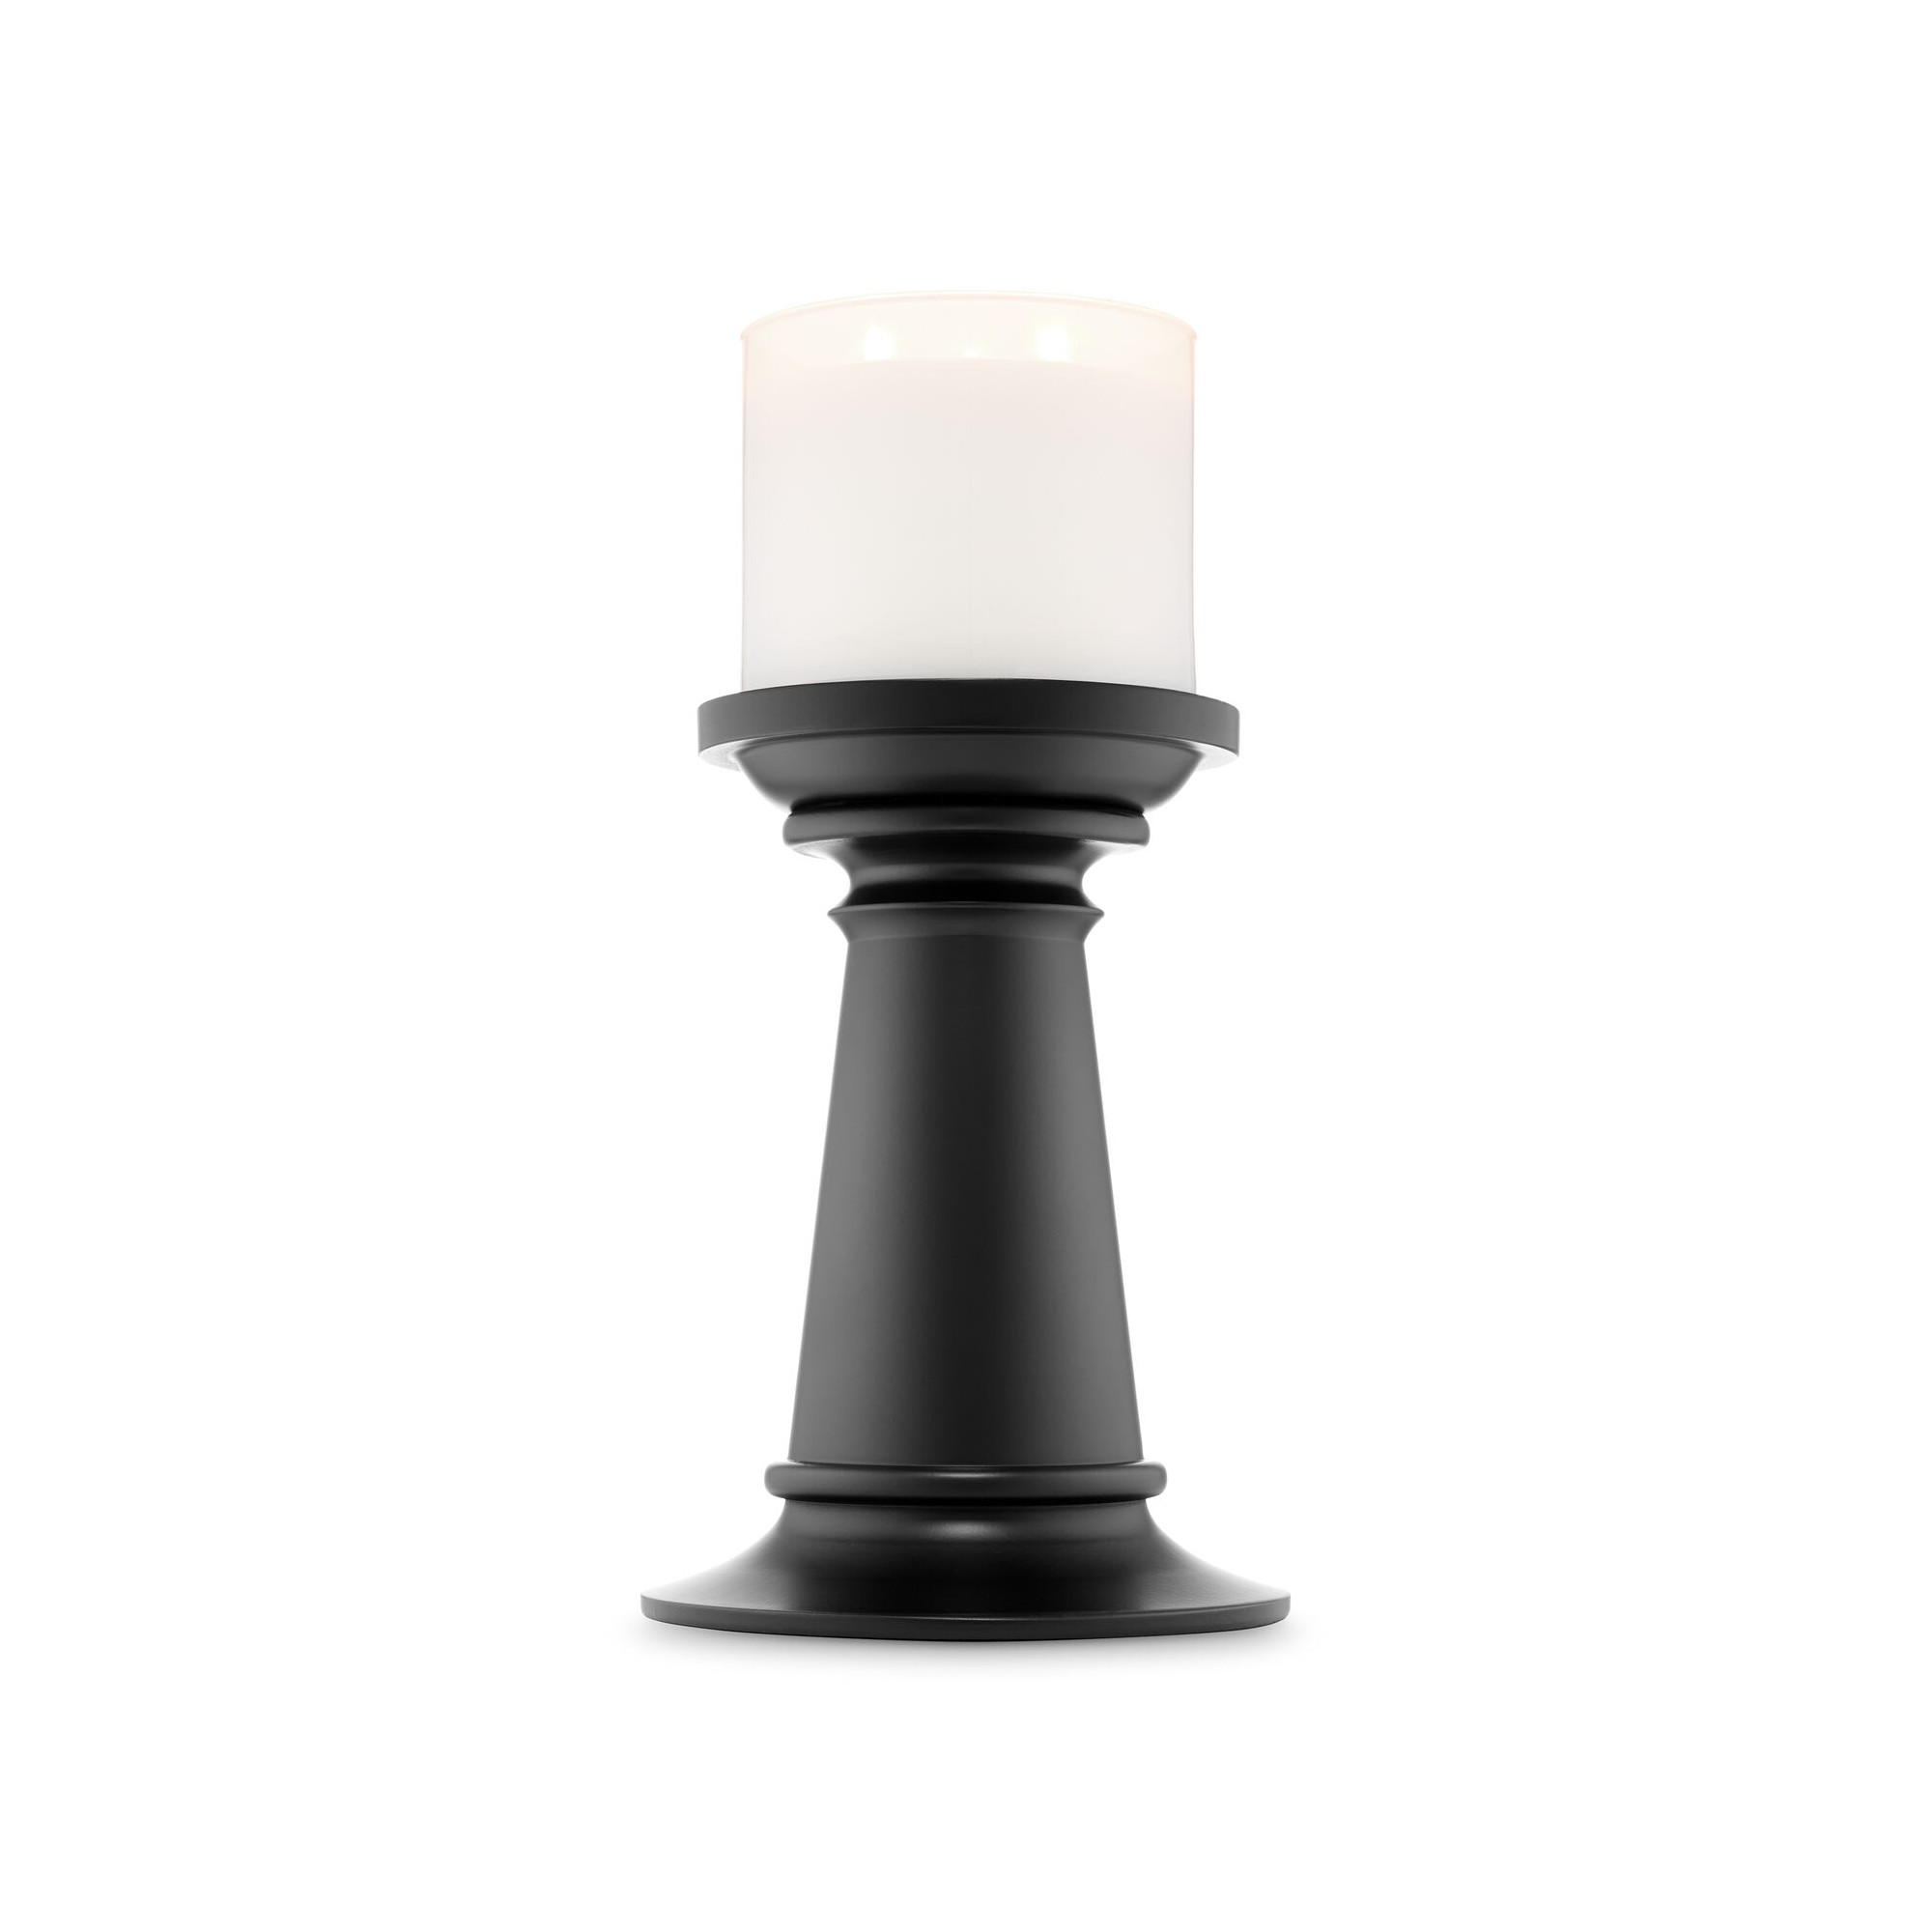 Bath & Body Works Tall Black Pedestal 3 Wick Candle Holder